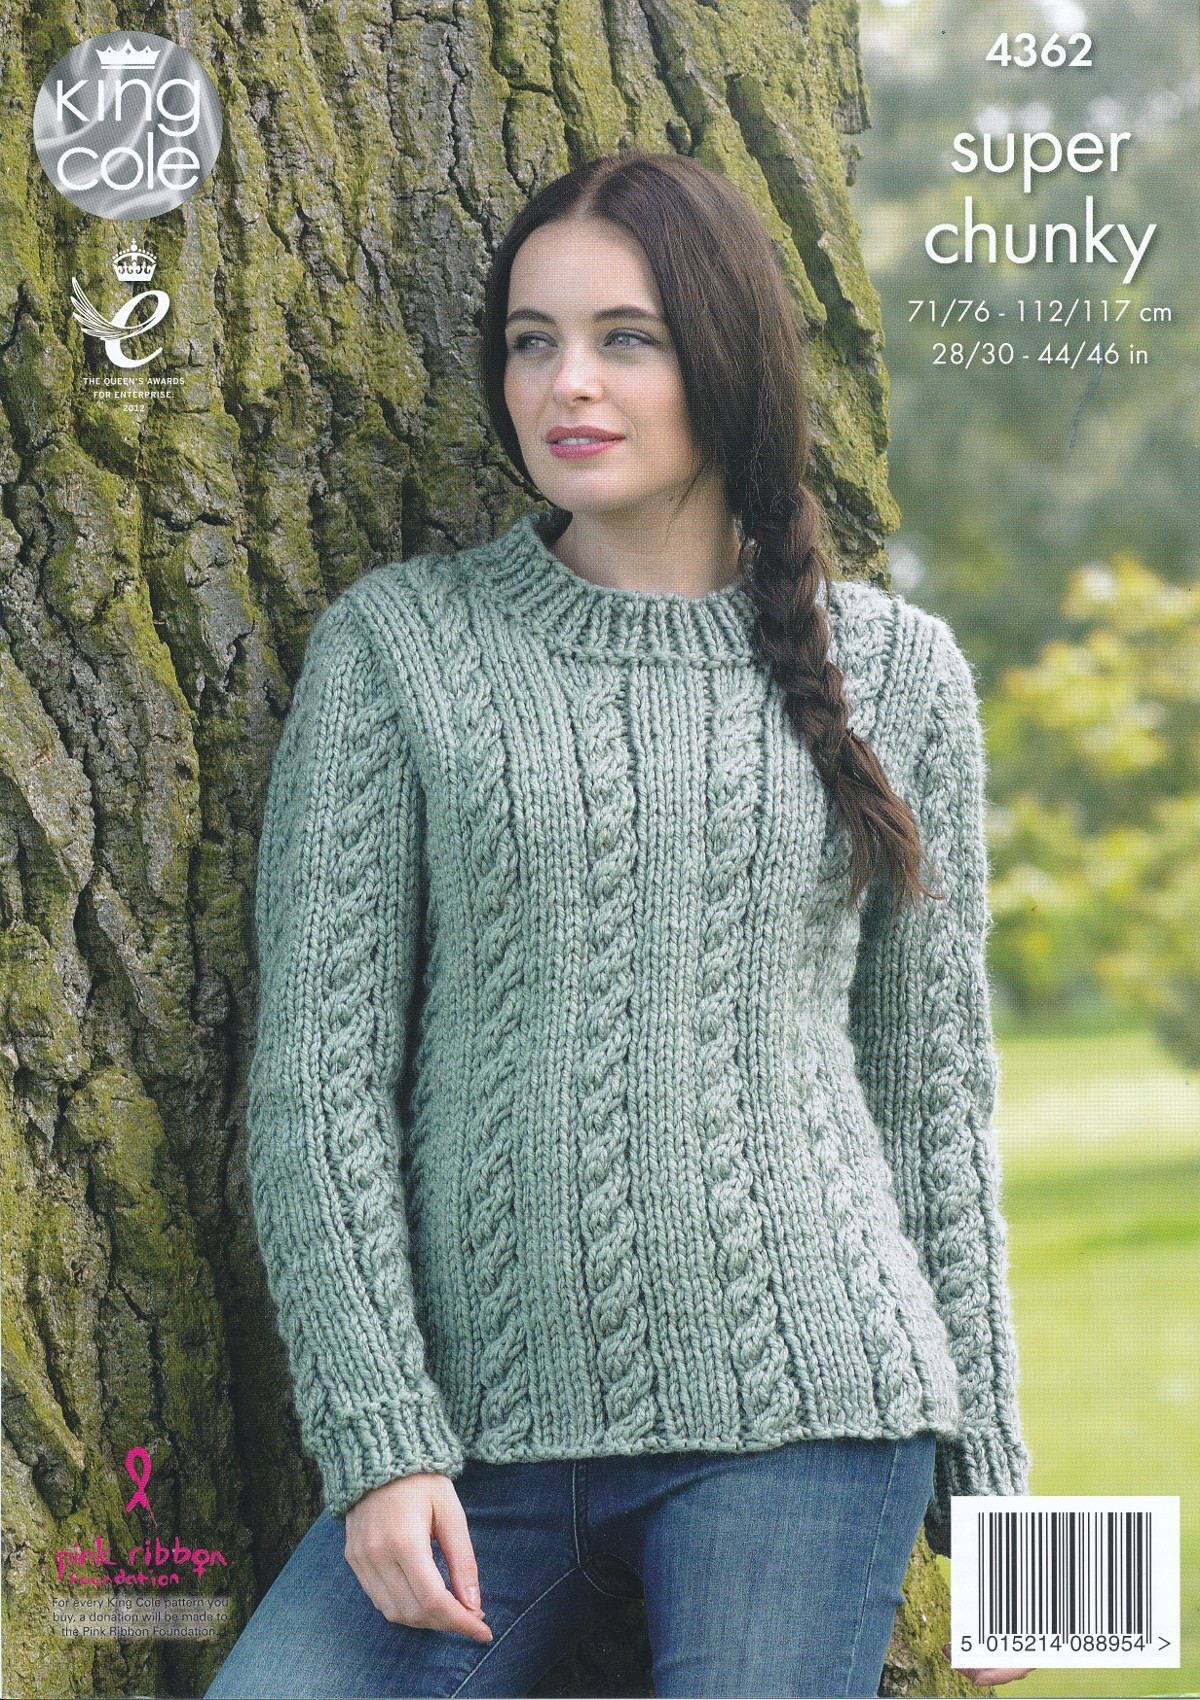 Knitting Patterns For Larger Ladies : Ladies Super Chunky Knitting Pattern King Cole Cable Knit Jumper Waistcoat 43...